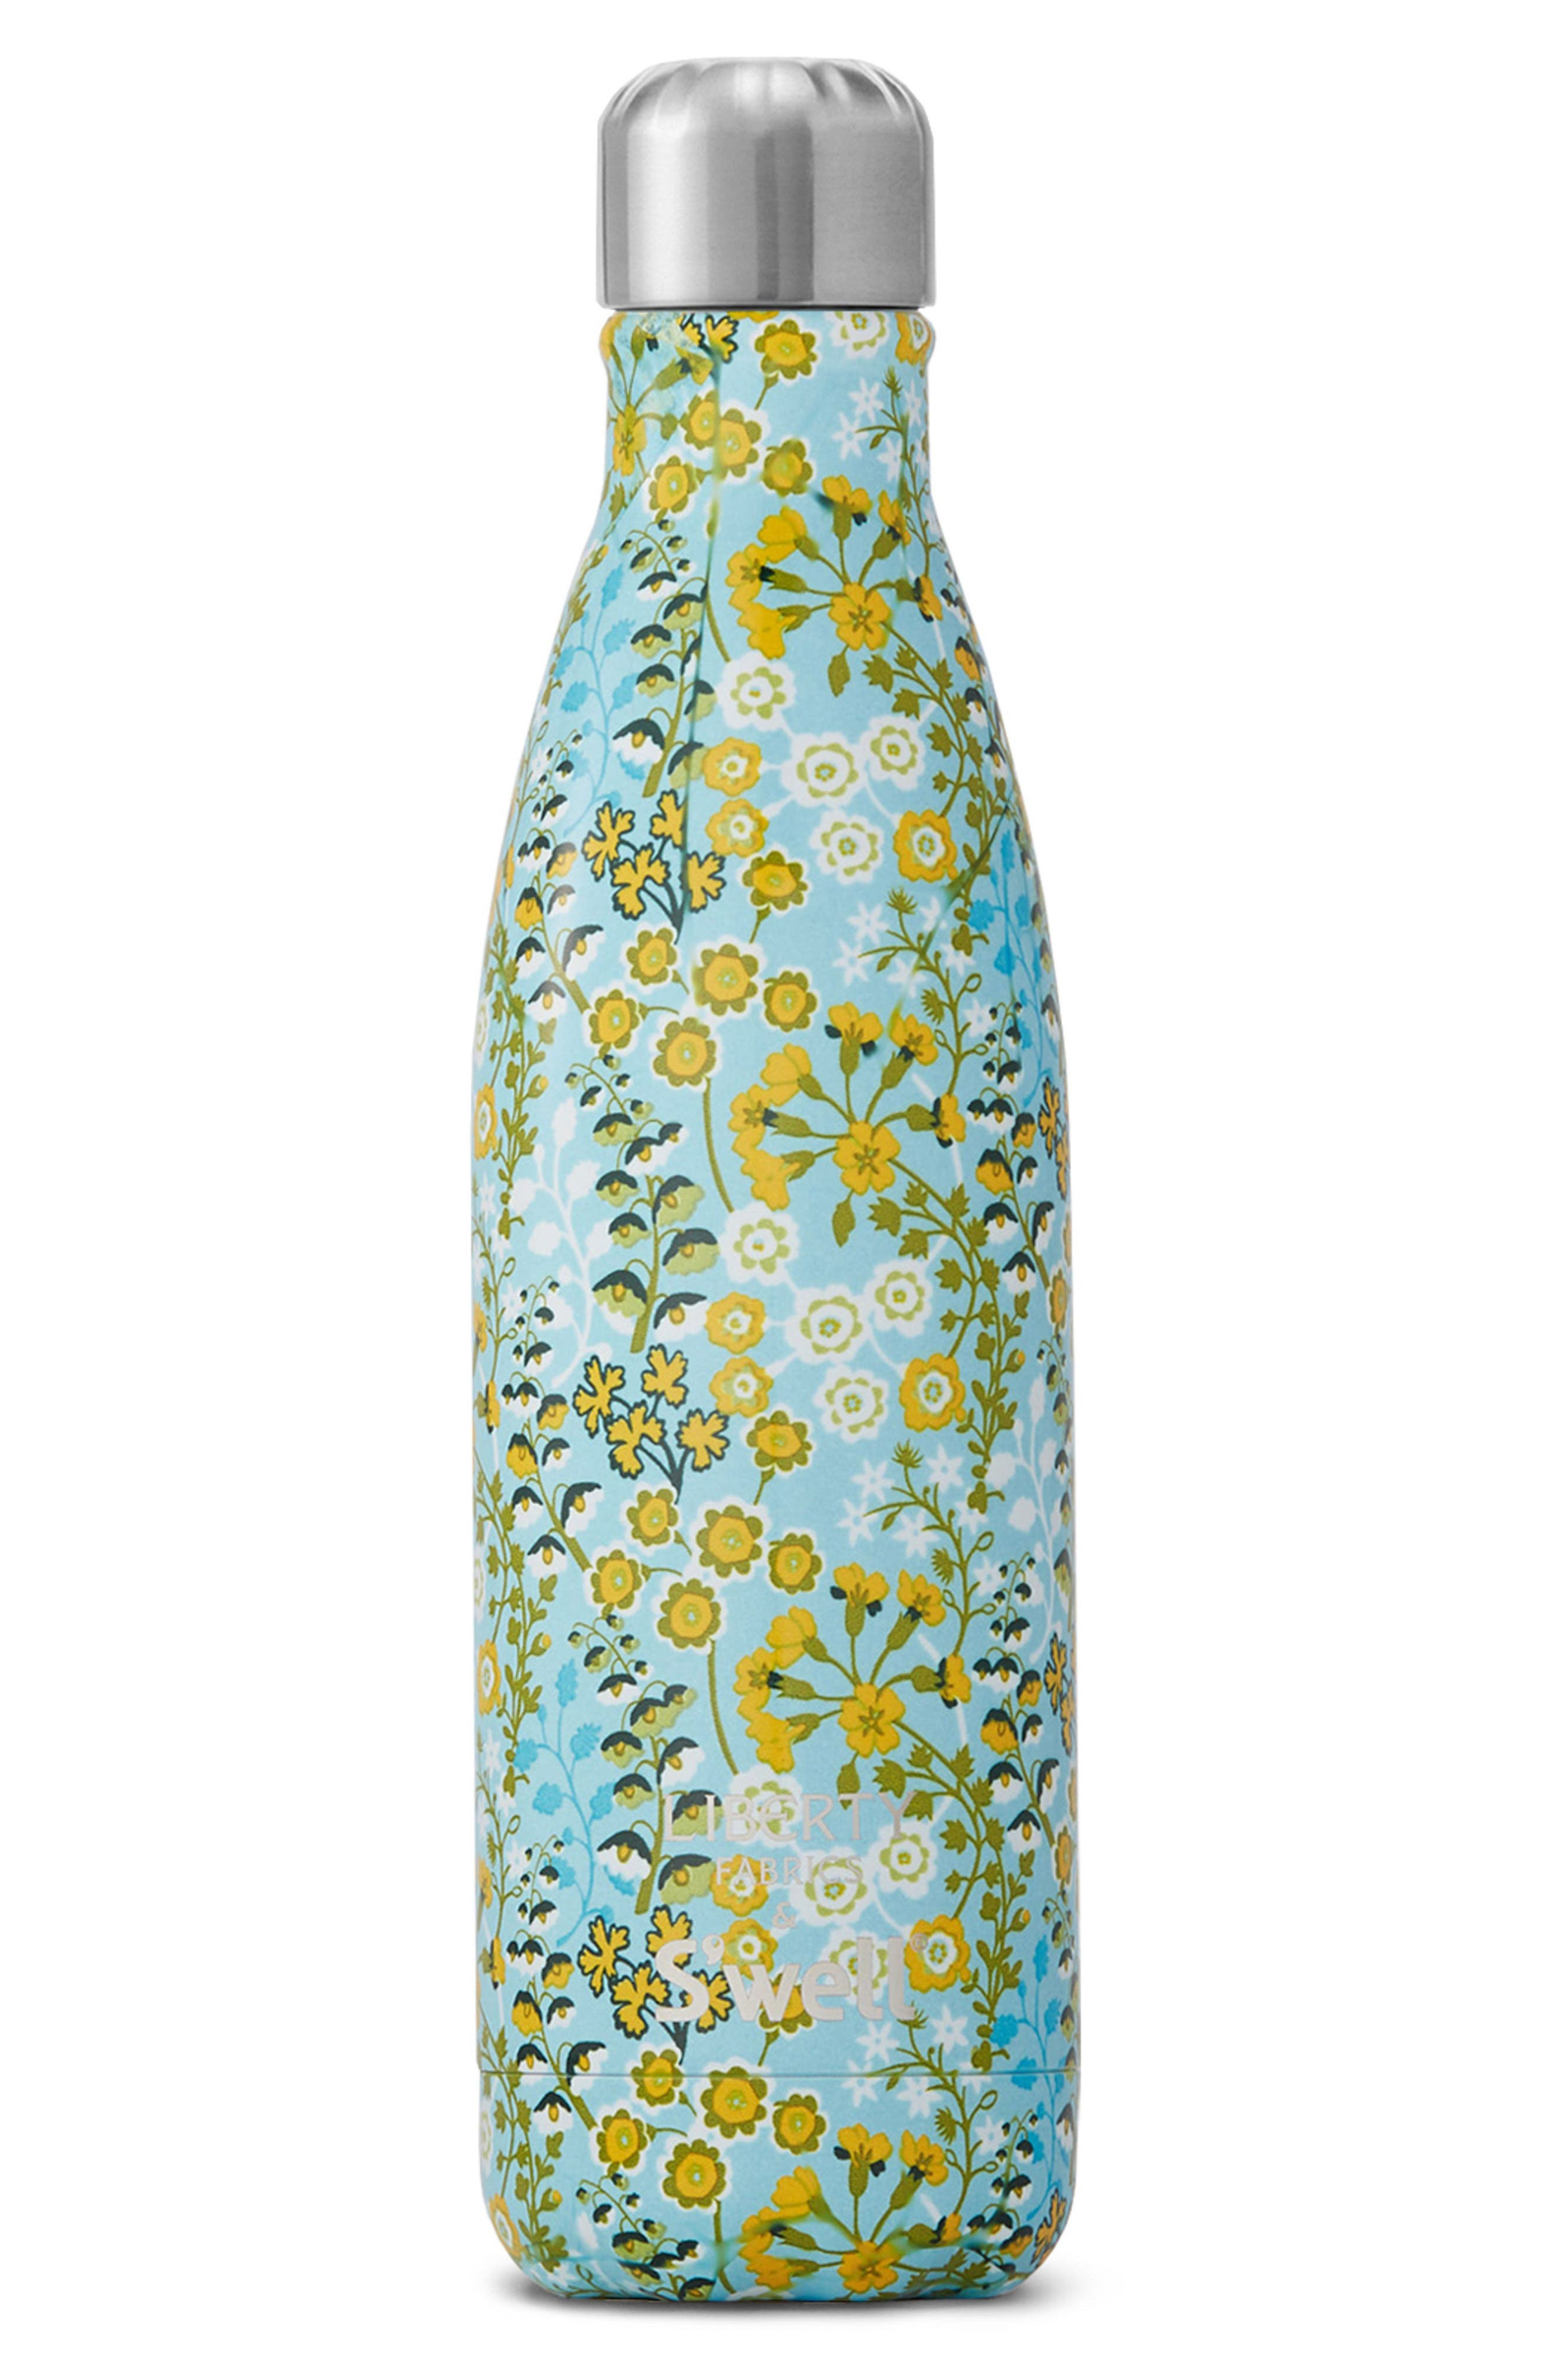 S'well Liberty Fabrics Primula Blossom Stainless Steel Water Bottle